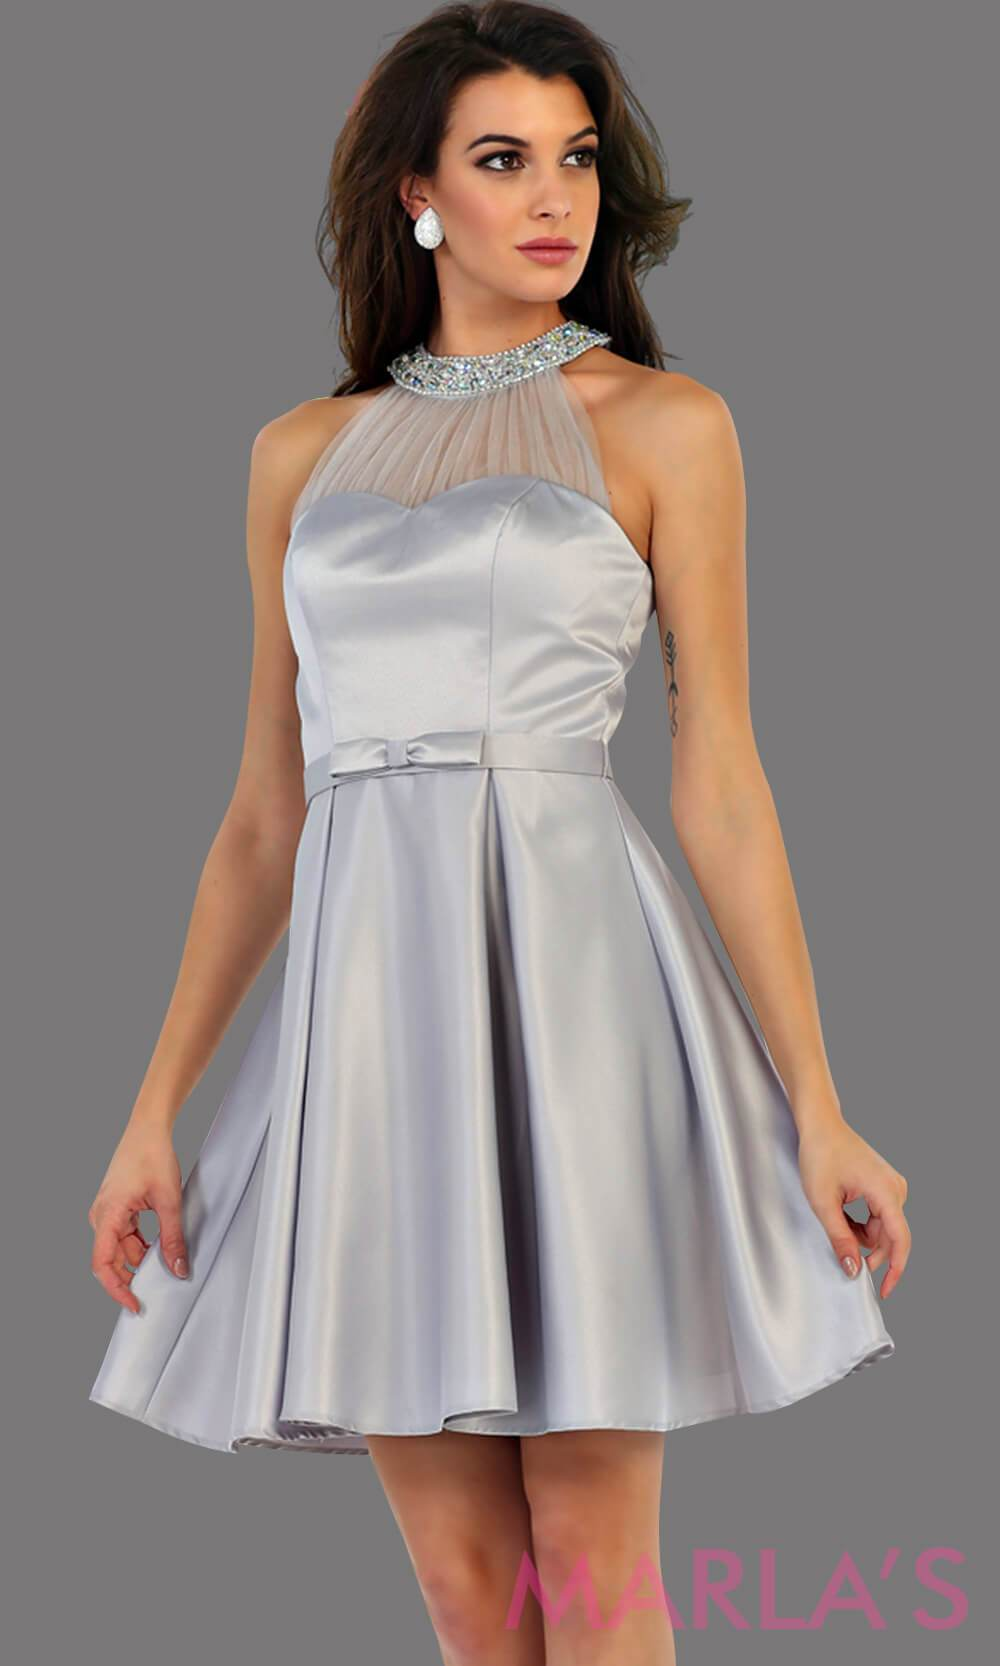 1474-Short high neck taffeta gray grade 8 grad dress with rhinestone neckline. Perfect as a silver confirmation dress, wedding guest dress, graduation dress, short prom dress, or damas dress. Available in plus sizes